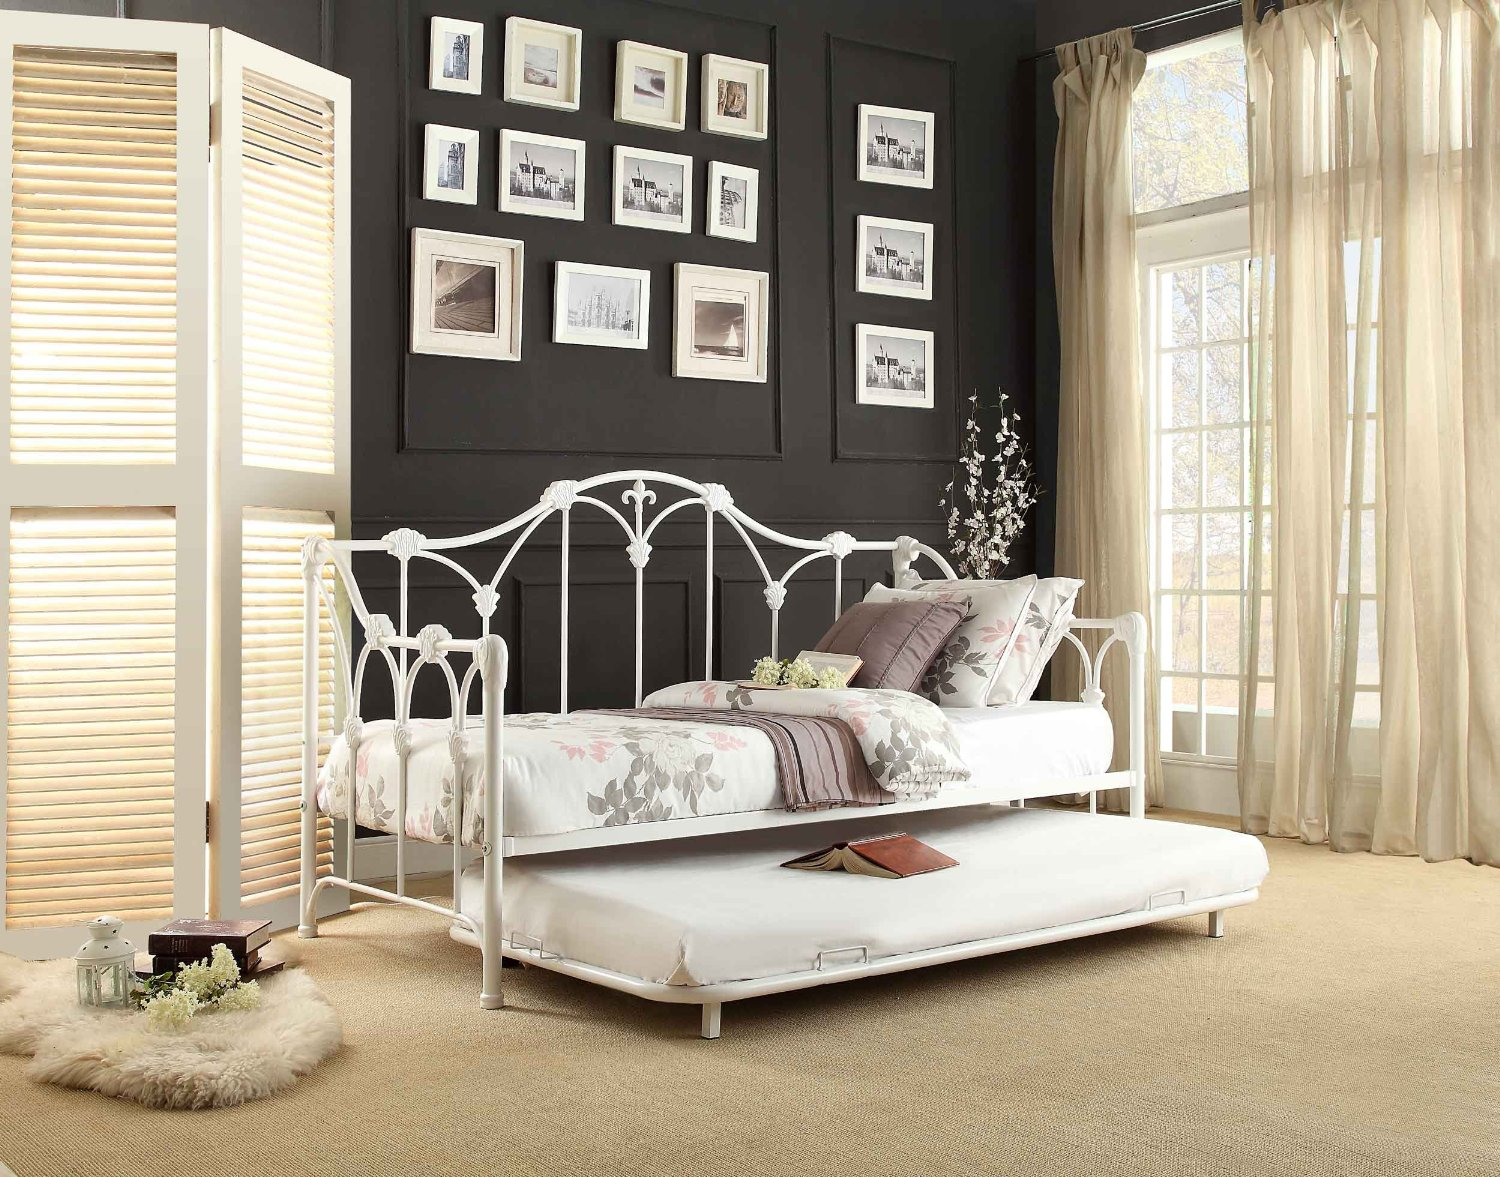 Childrens Beds With Pull Out Bed Underneath White Metal Frame Daybed With Trundle Roll Out Pop Up Trundles